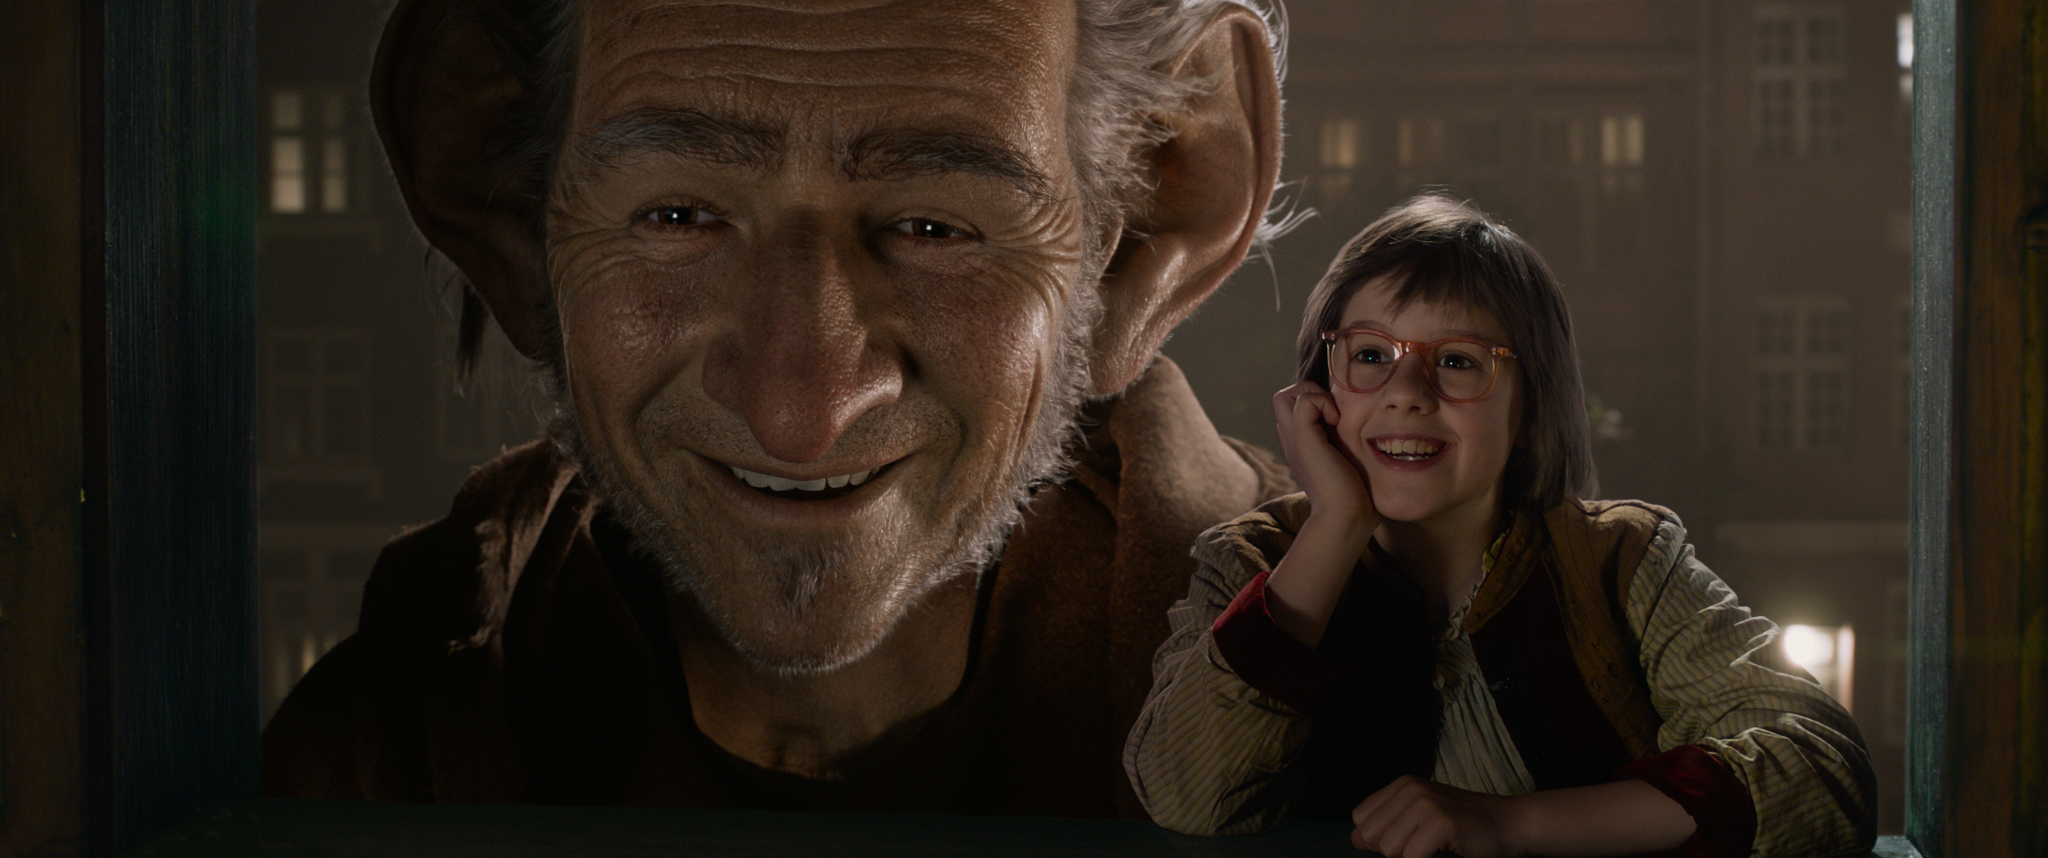 REVIEW - Disney's THE BFG is a delightful movie for the entire family #TheBFG